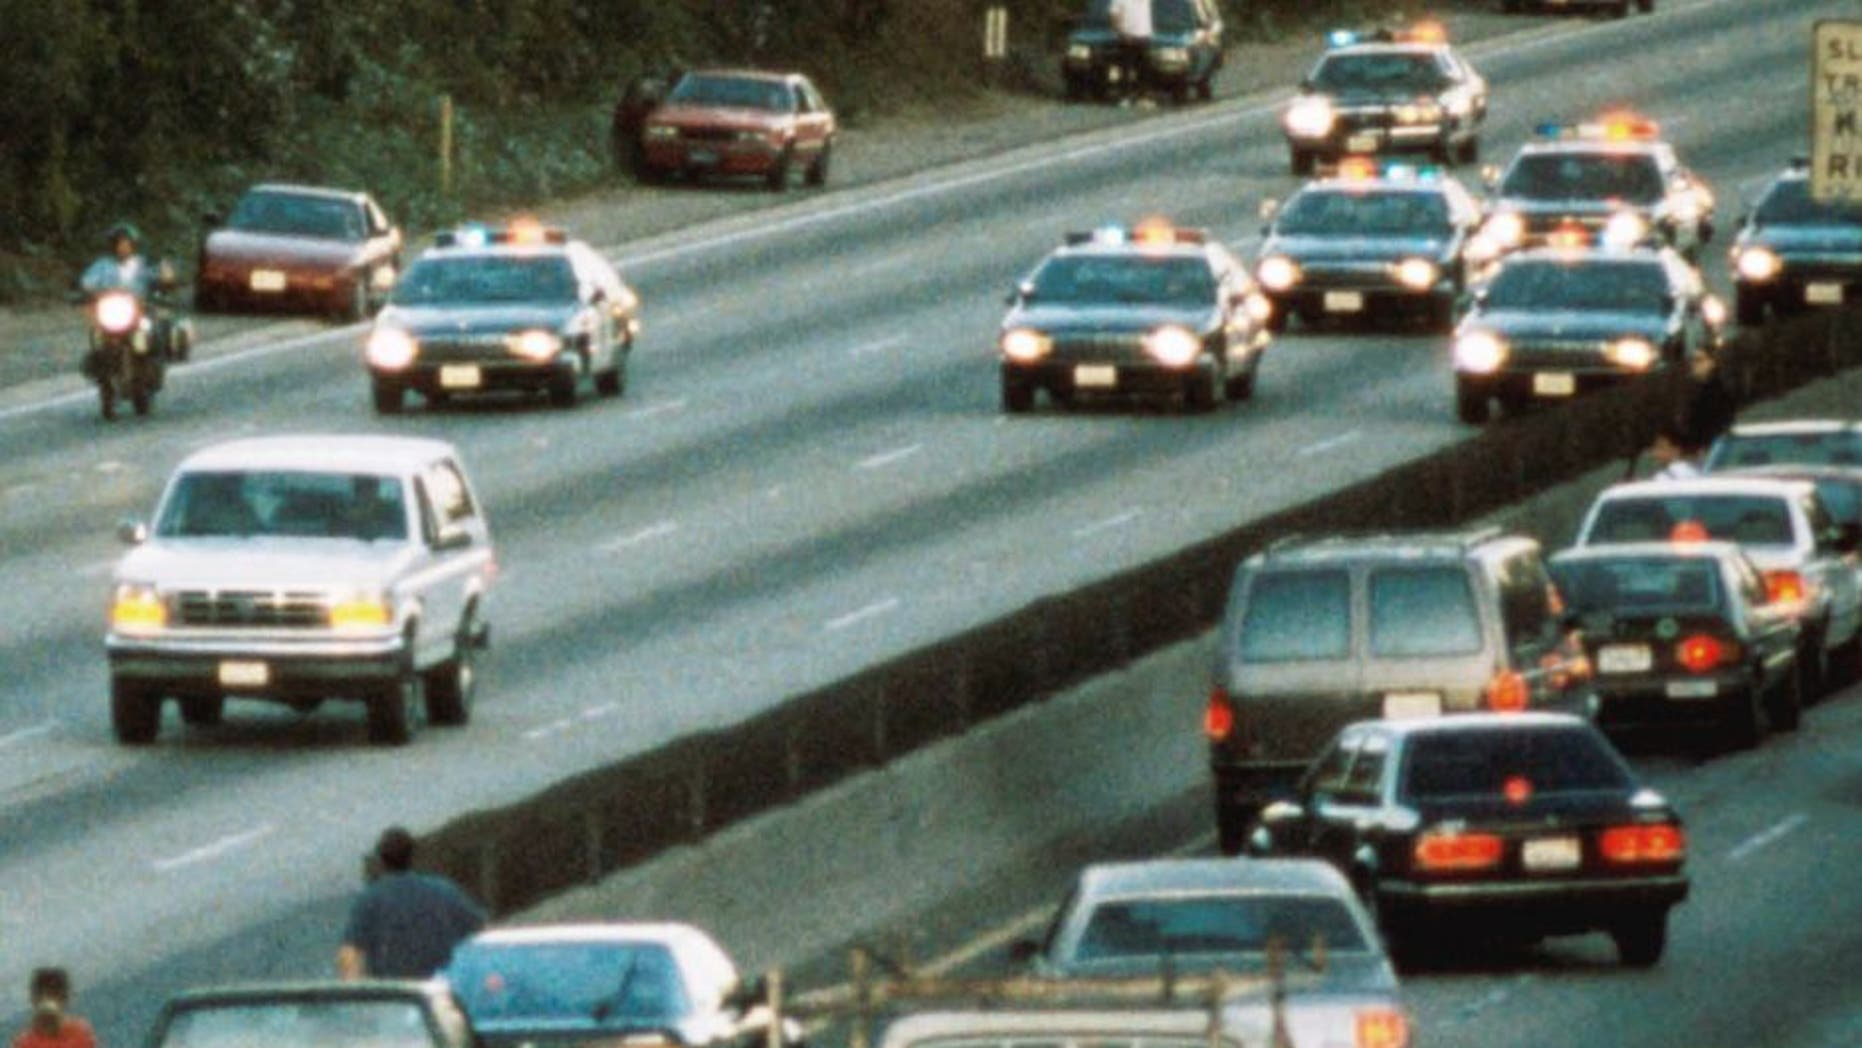 LOS ANGELES - JUNE 17: Motorists stop and wave as police cars pursue the Ford Bronco (white, R) driven by Al Cowlings, carrying fugitive murder suspect O.J. Simpson, on a 90-minute slow-speed car chase June 17, 1994 on the 405 freeway in Los Angeles, California. Simpson's friend Cowlings eventually drove Simpson home, with Simpson ducked under the back passenger seat, to Brentwood where he surrendered after a stand-off with police. (Photo by Jean-Marc Giboux/Liaison)